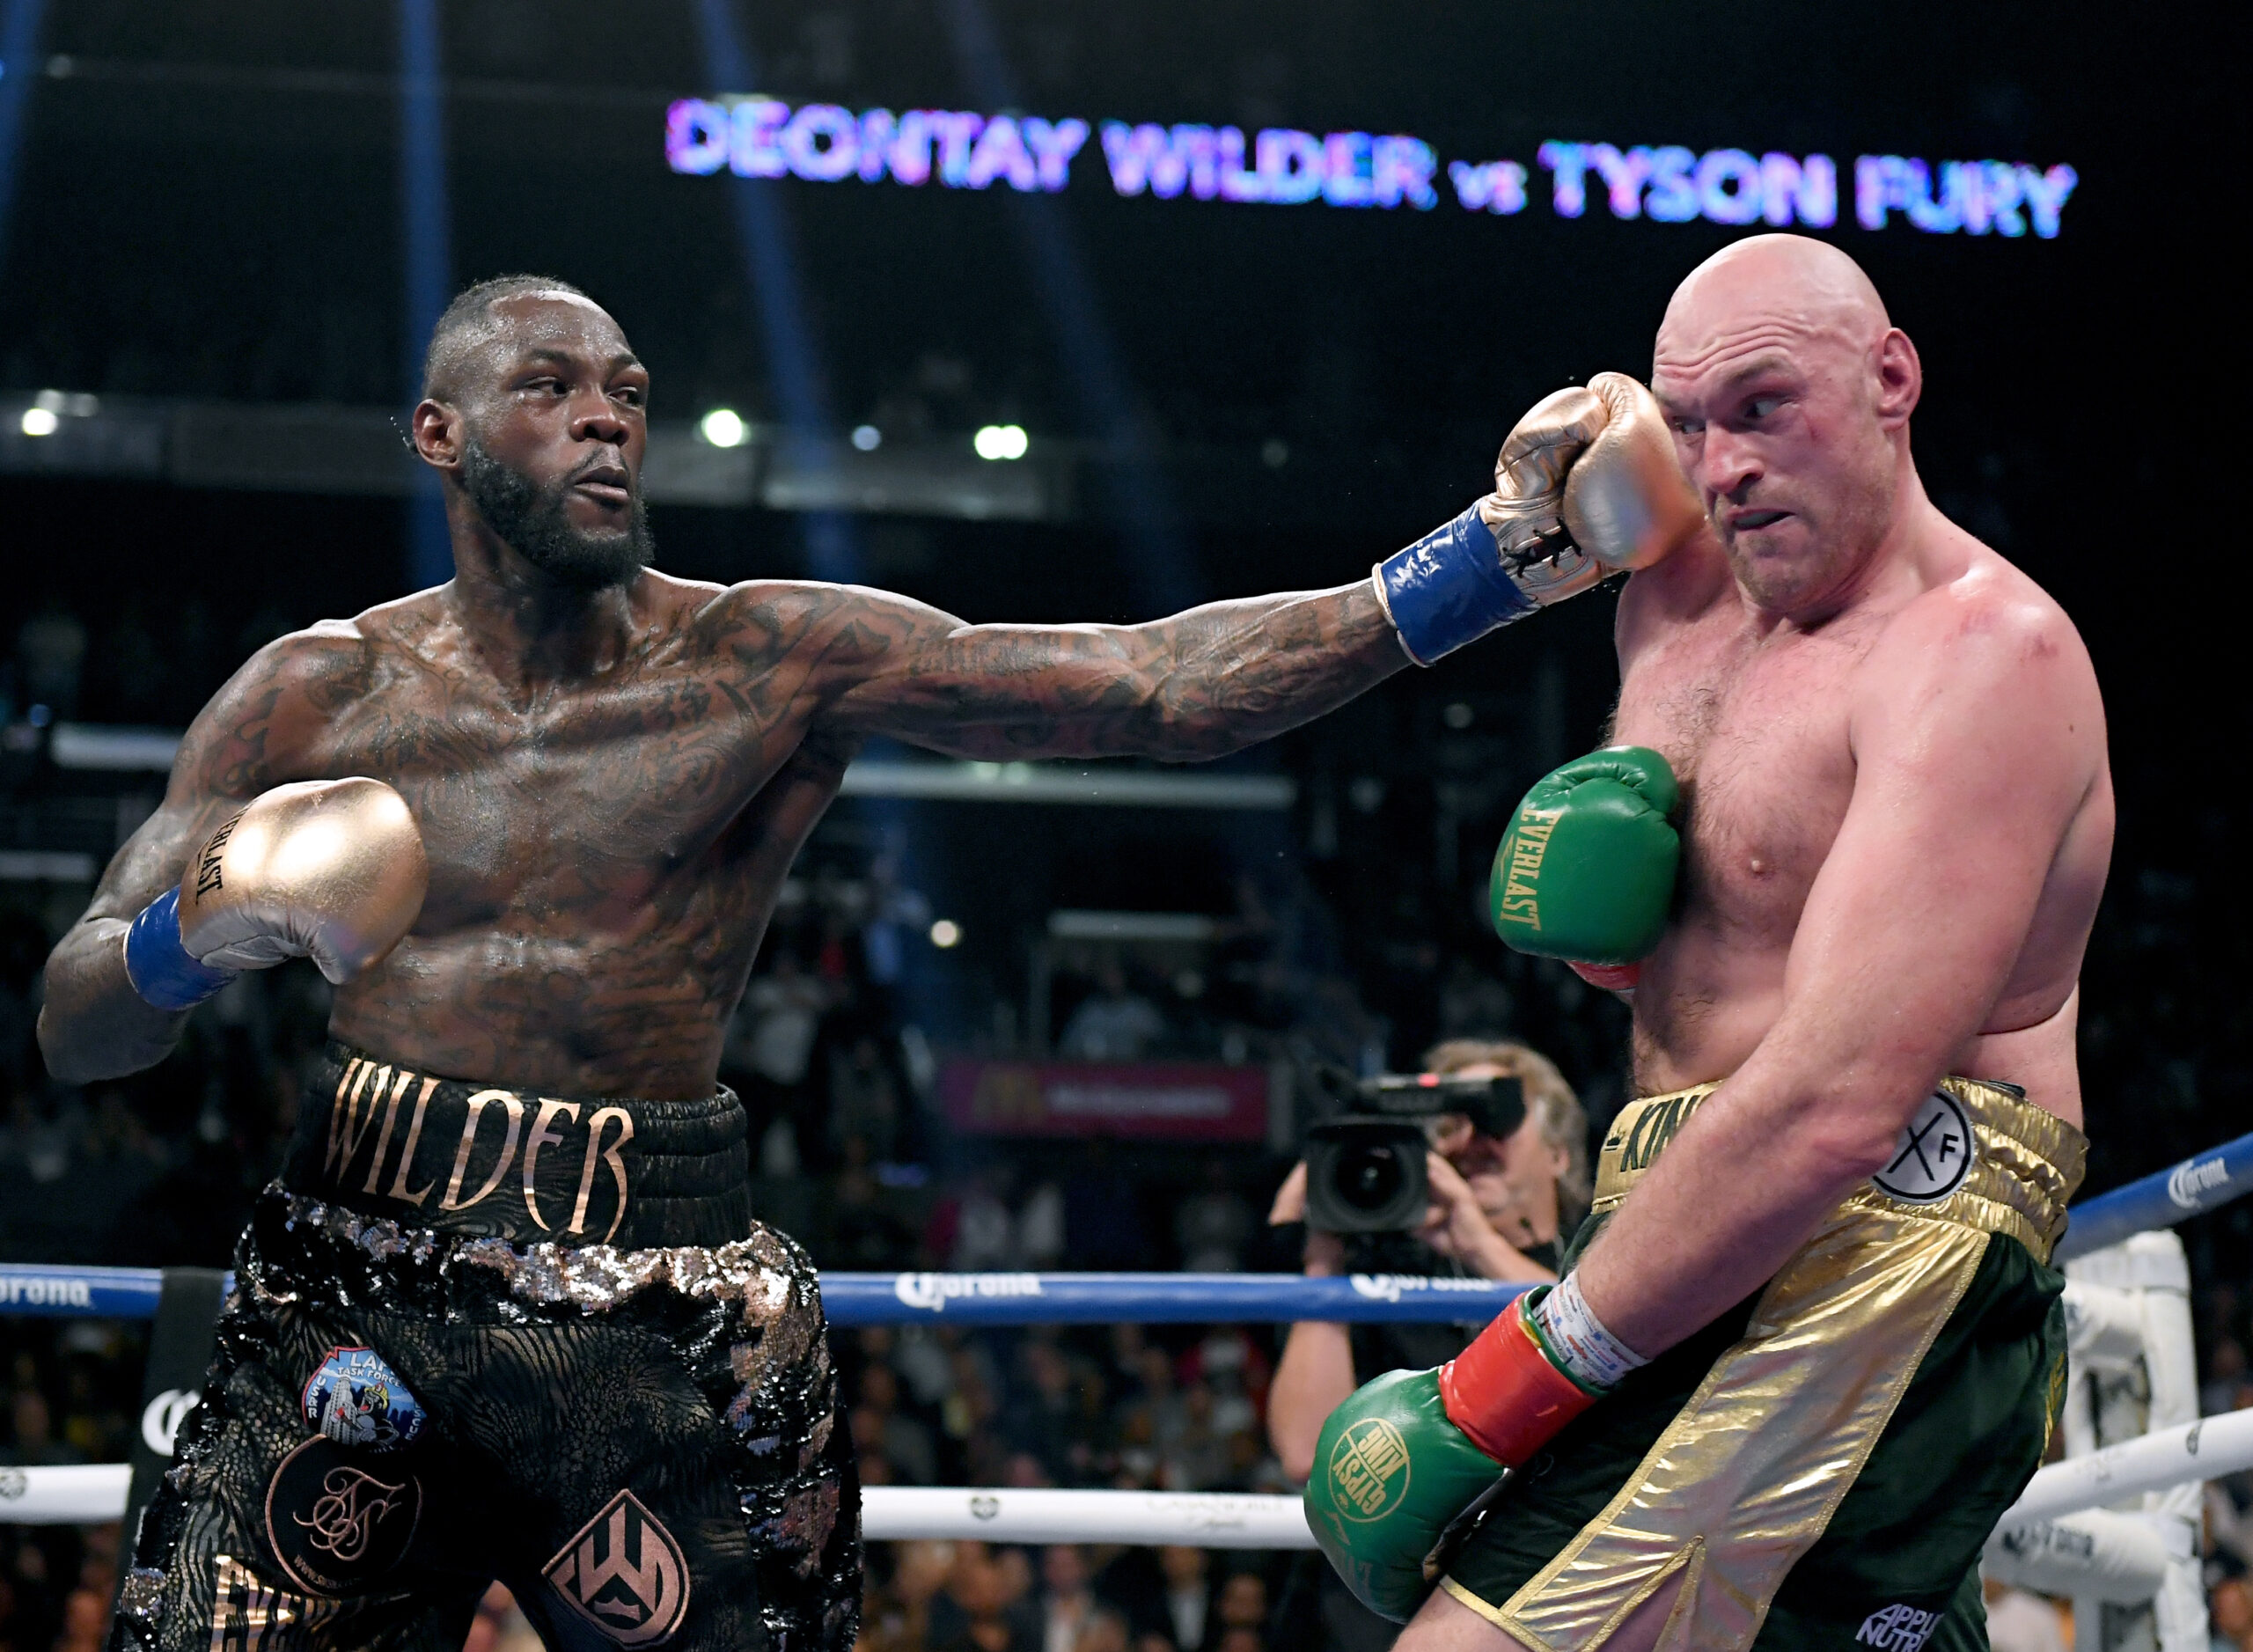 Trademark costume still a go for Wilder on trilogy with Fury